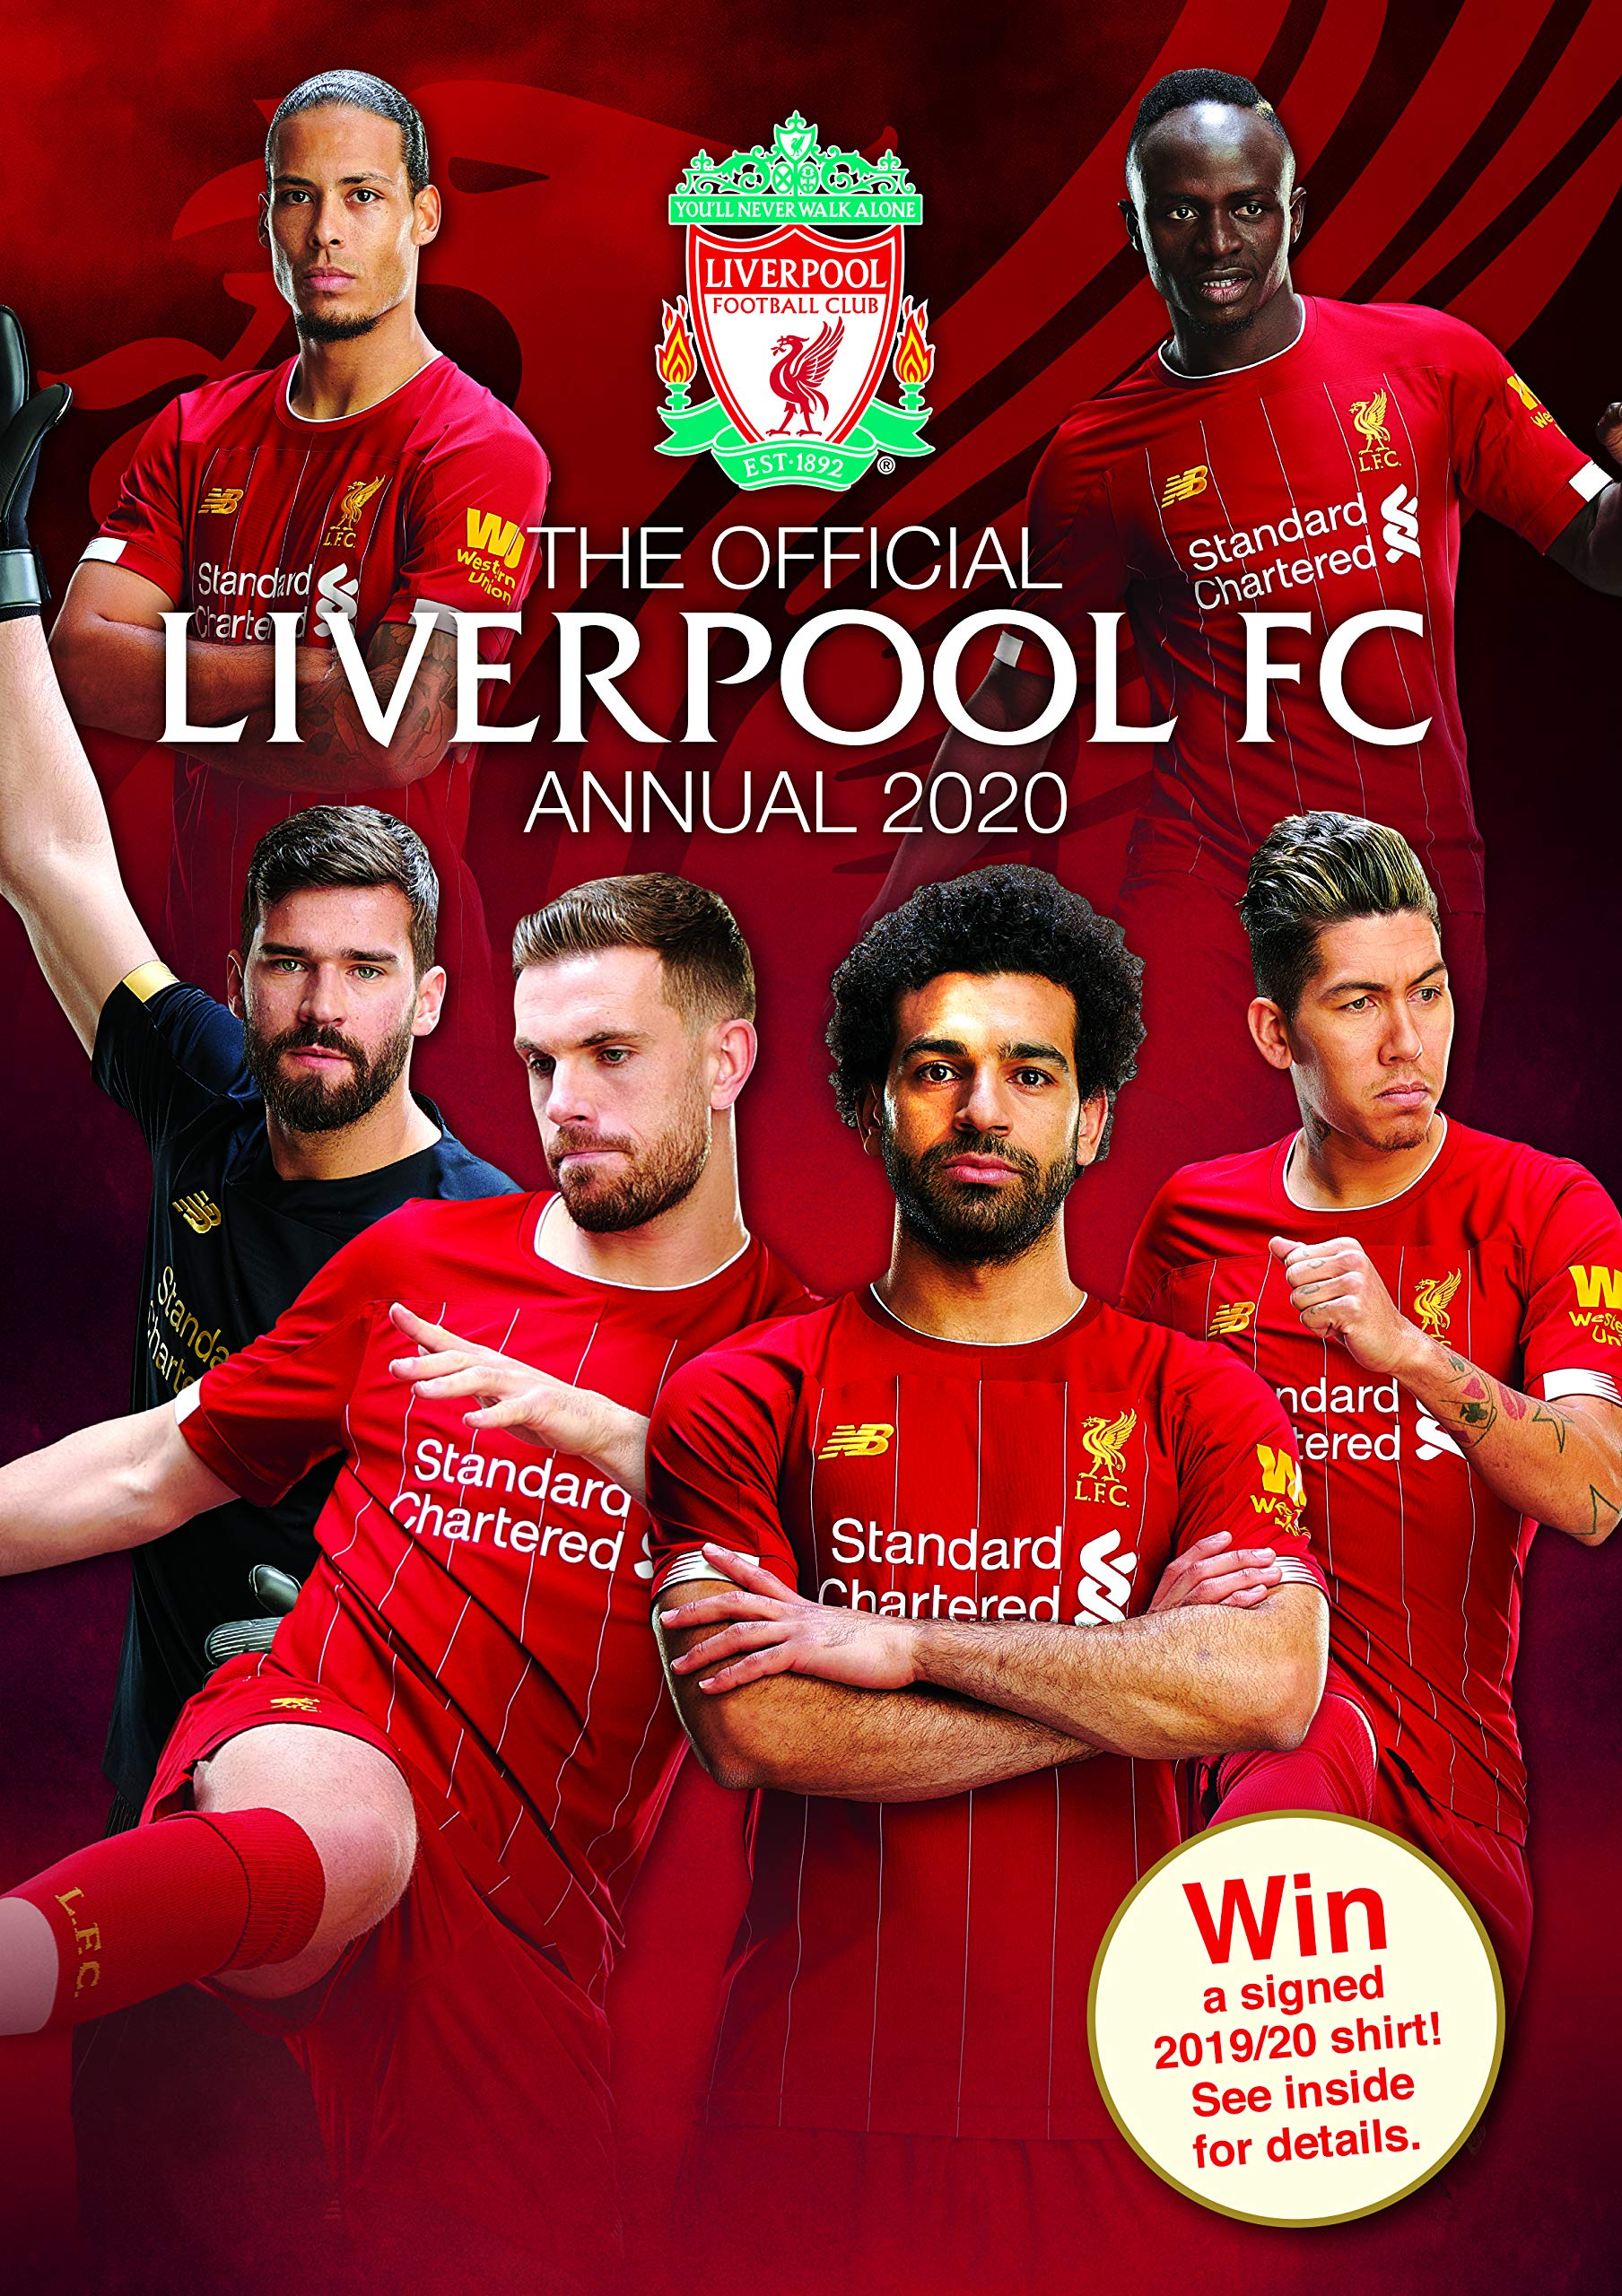 The Official Liverpool Fc Annual 2020 Fc Liverpool 9781913034238 Amazon Com Books